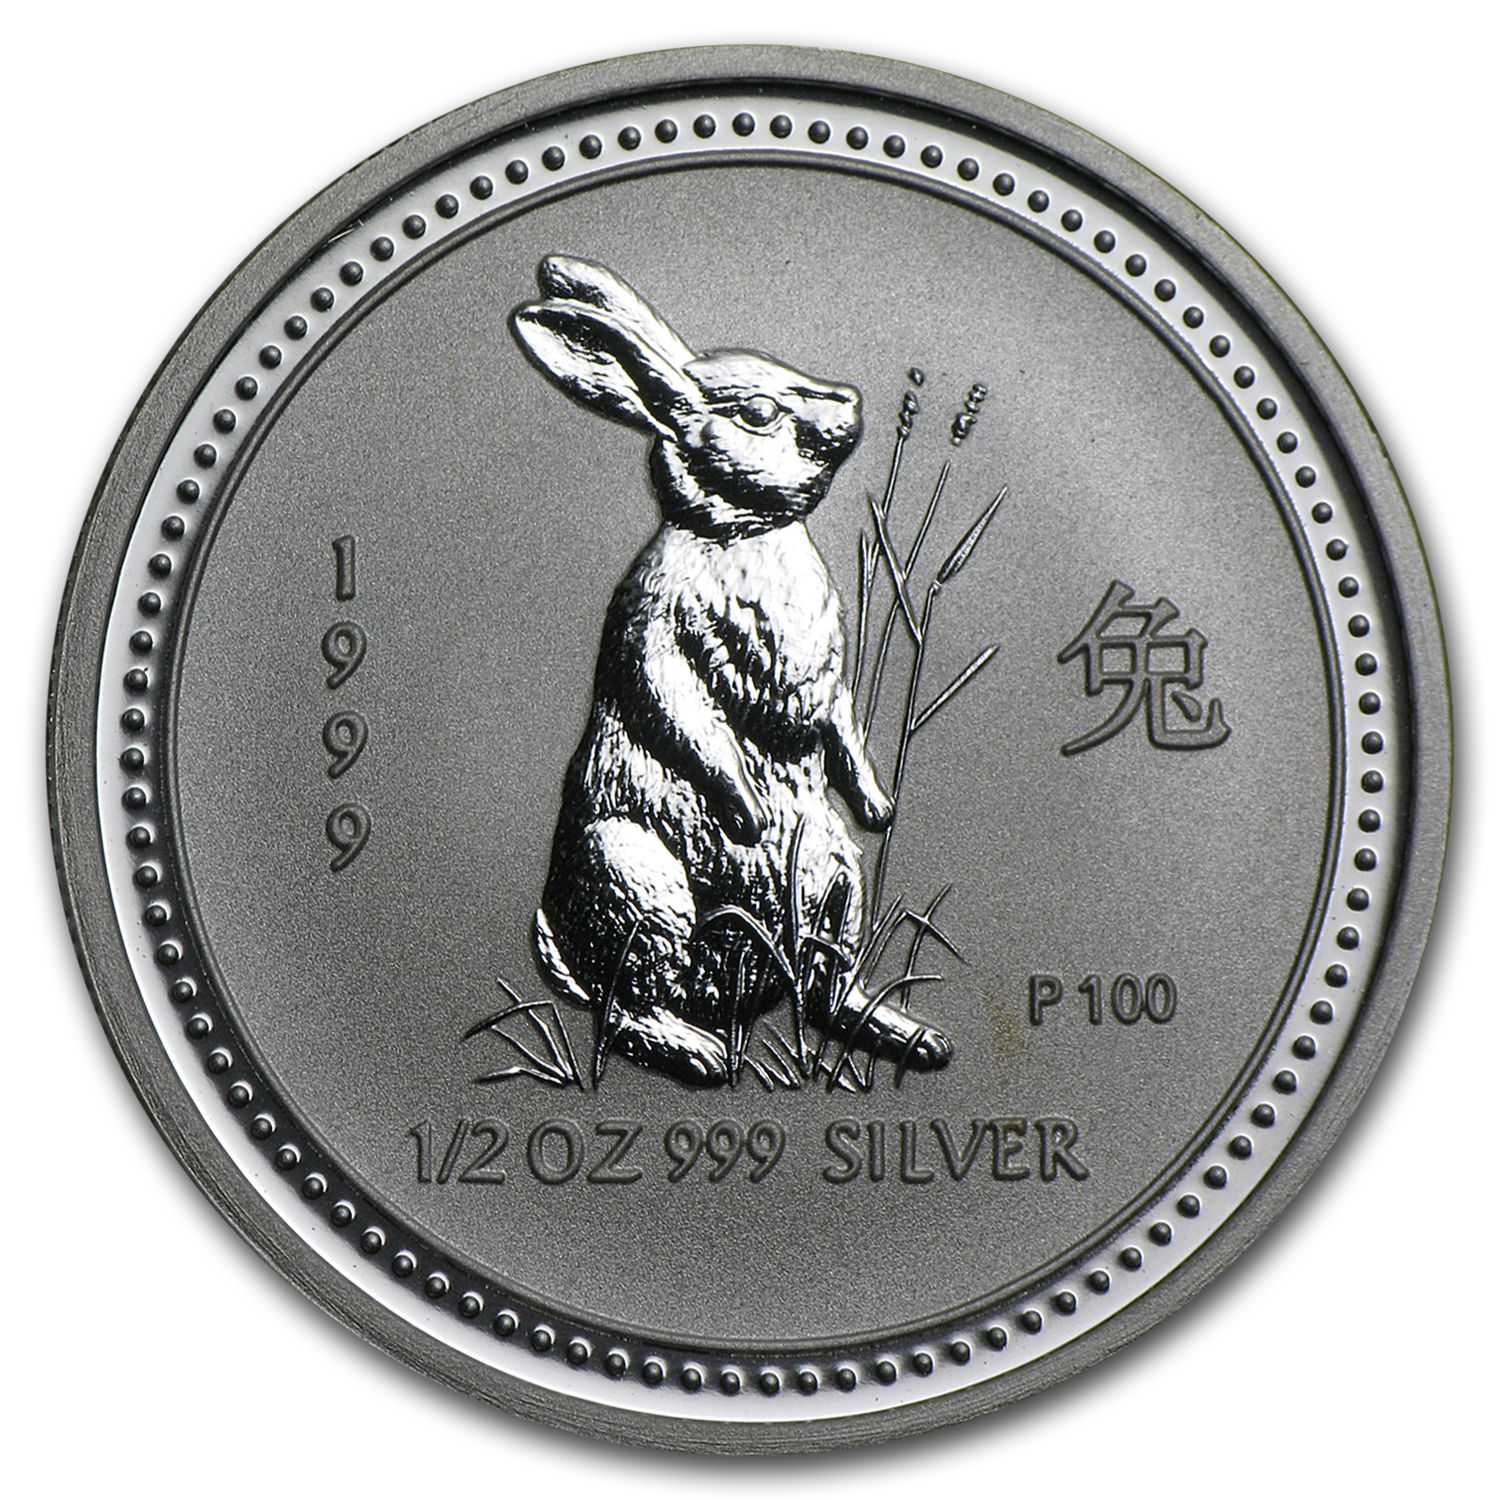 1999 Australia 1/2 oz Silver Year of the Rabbit BU